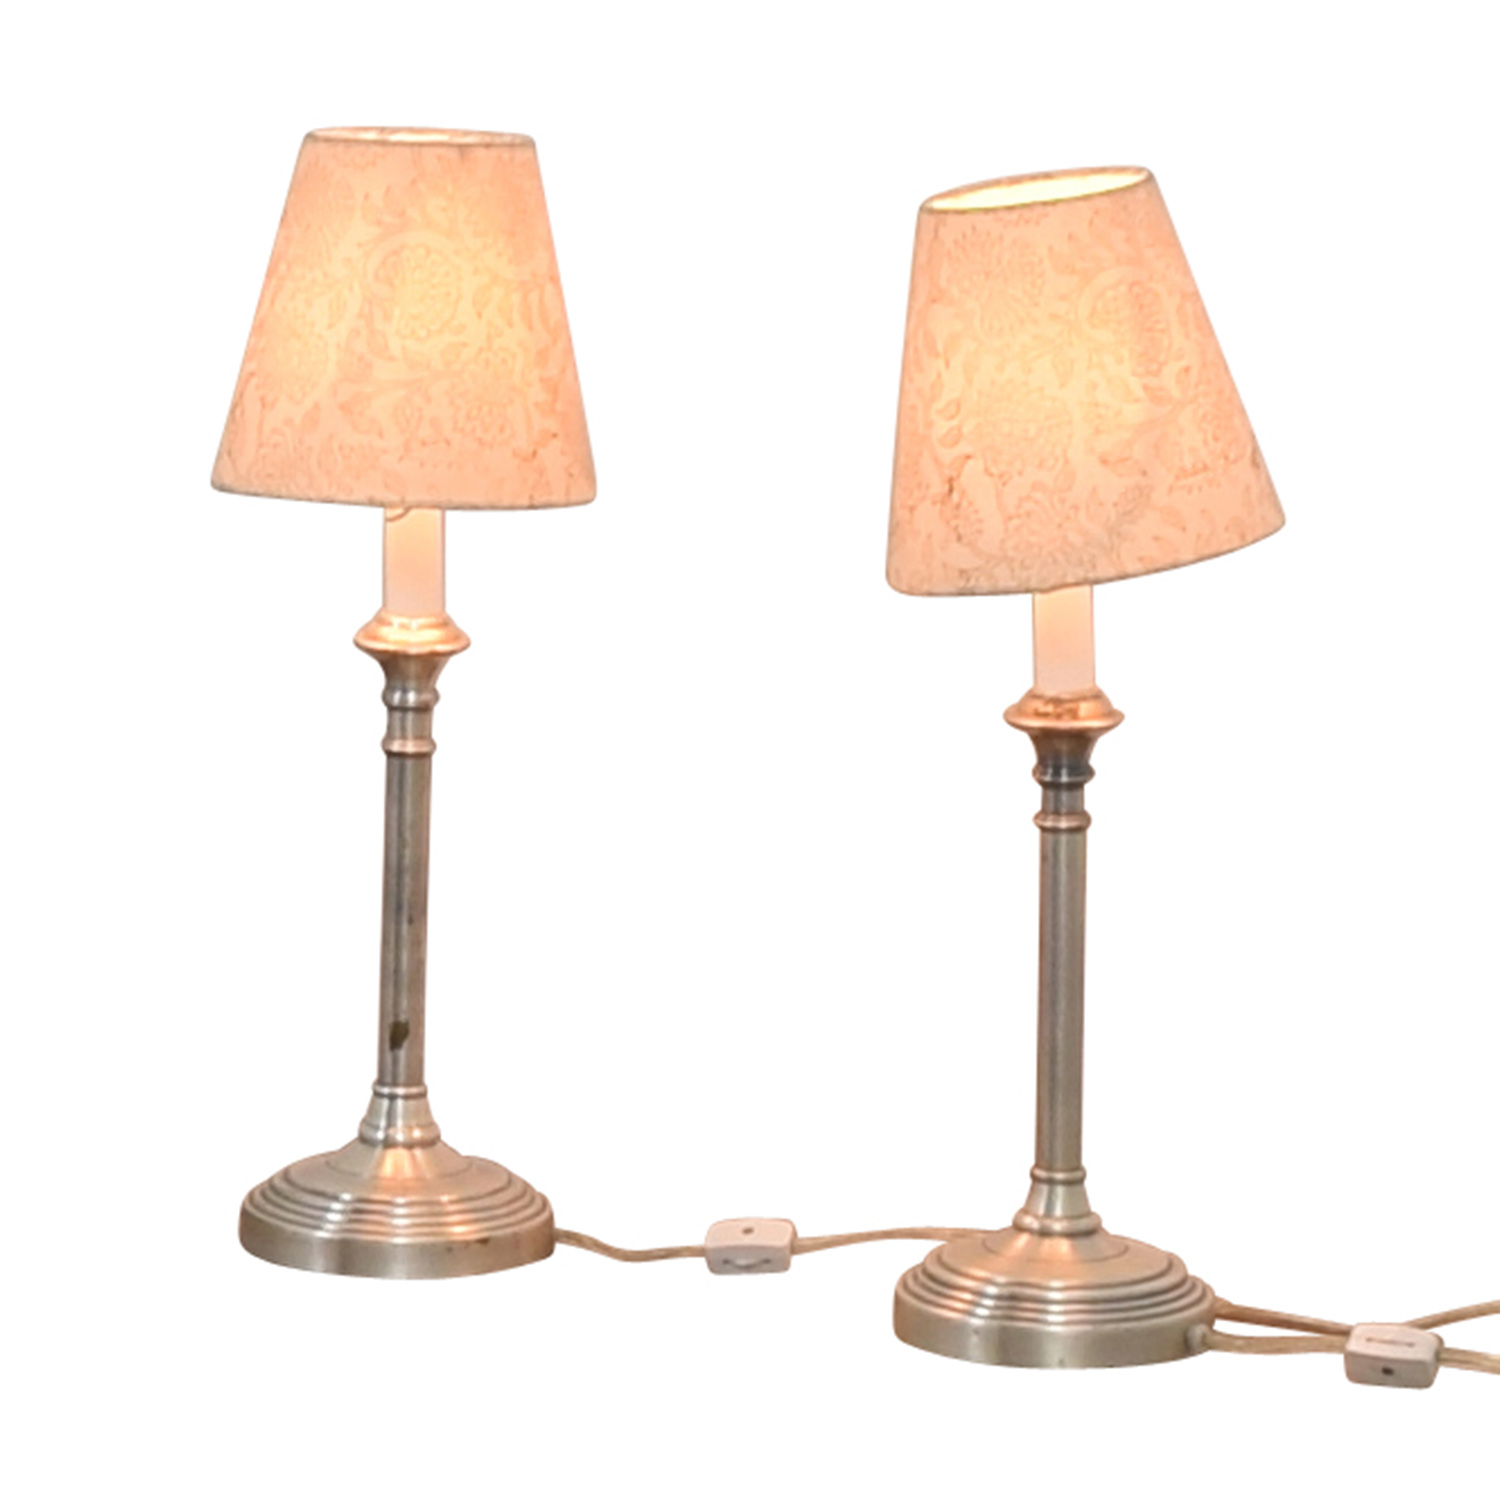 Pottery Barn Pottery Barn Chrome Lamps with Floral Shades